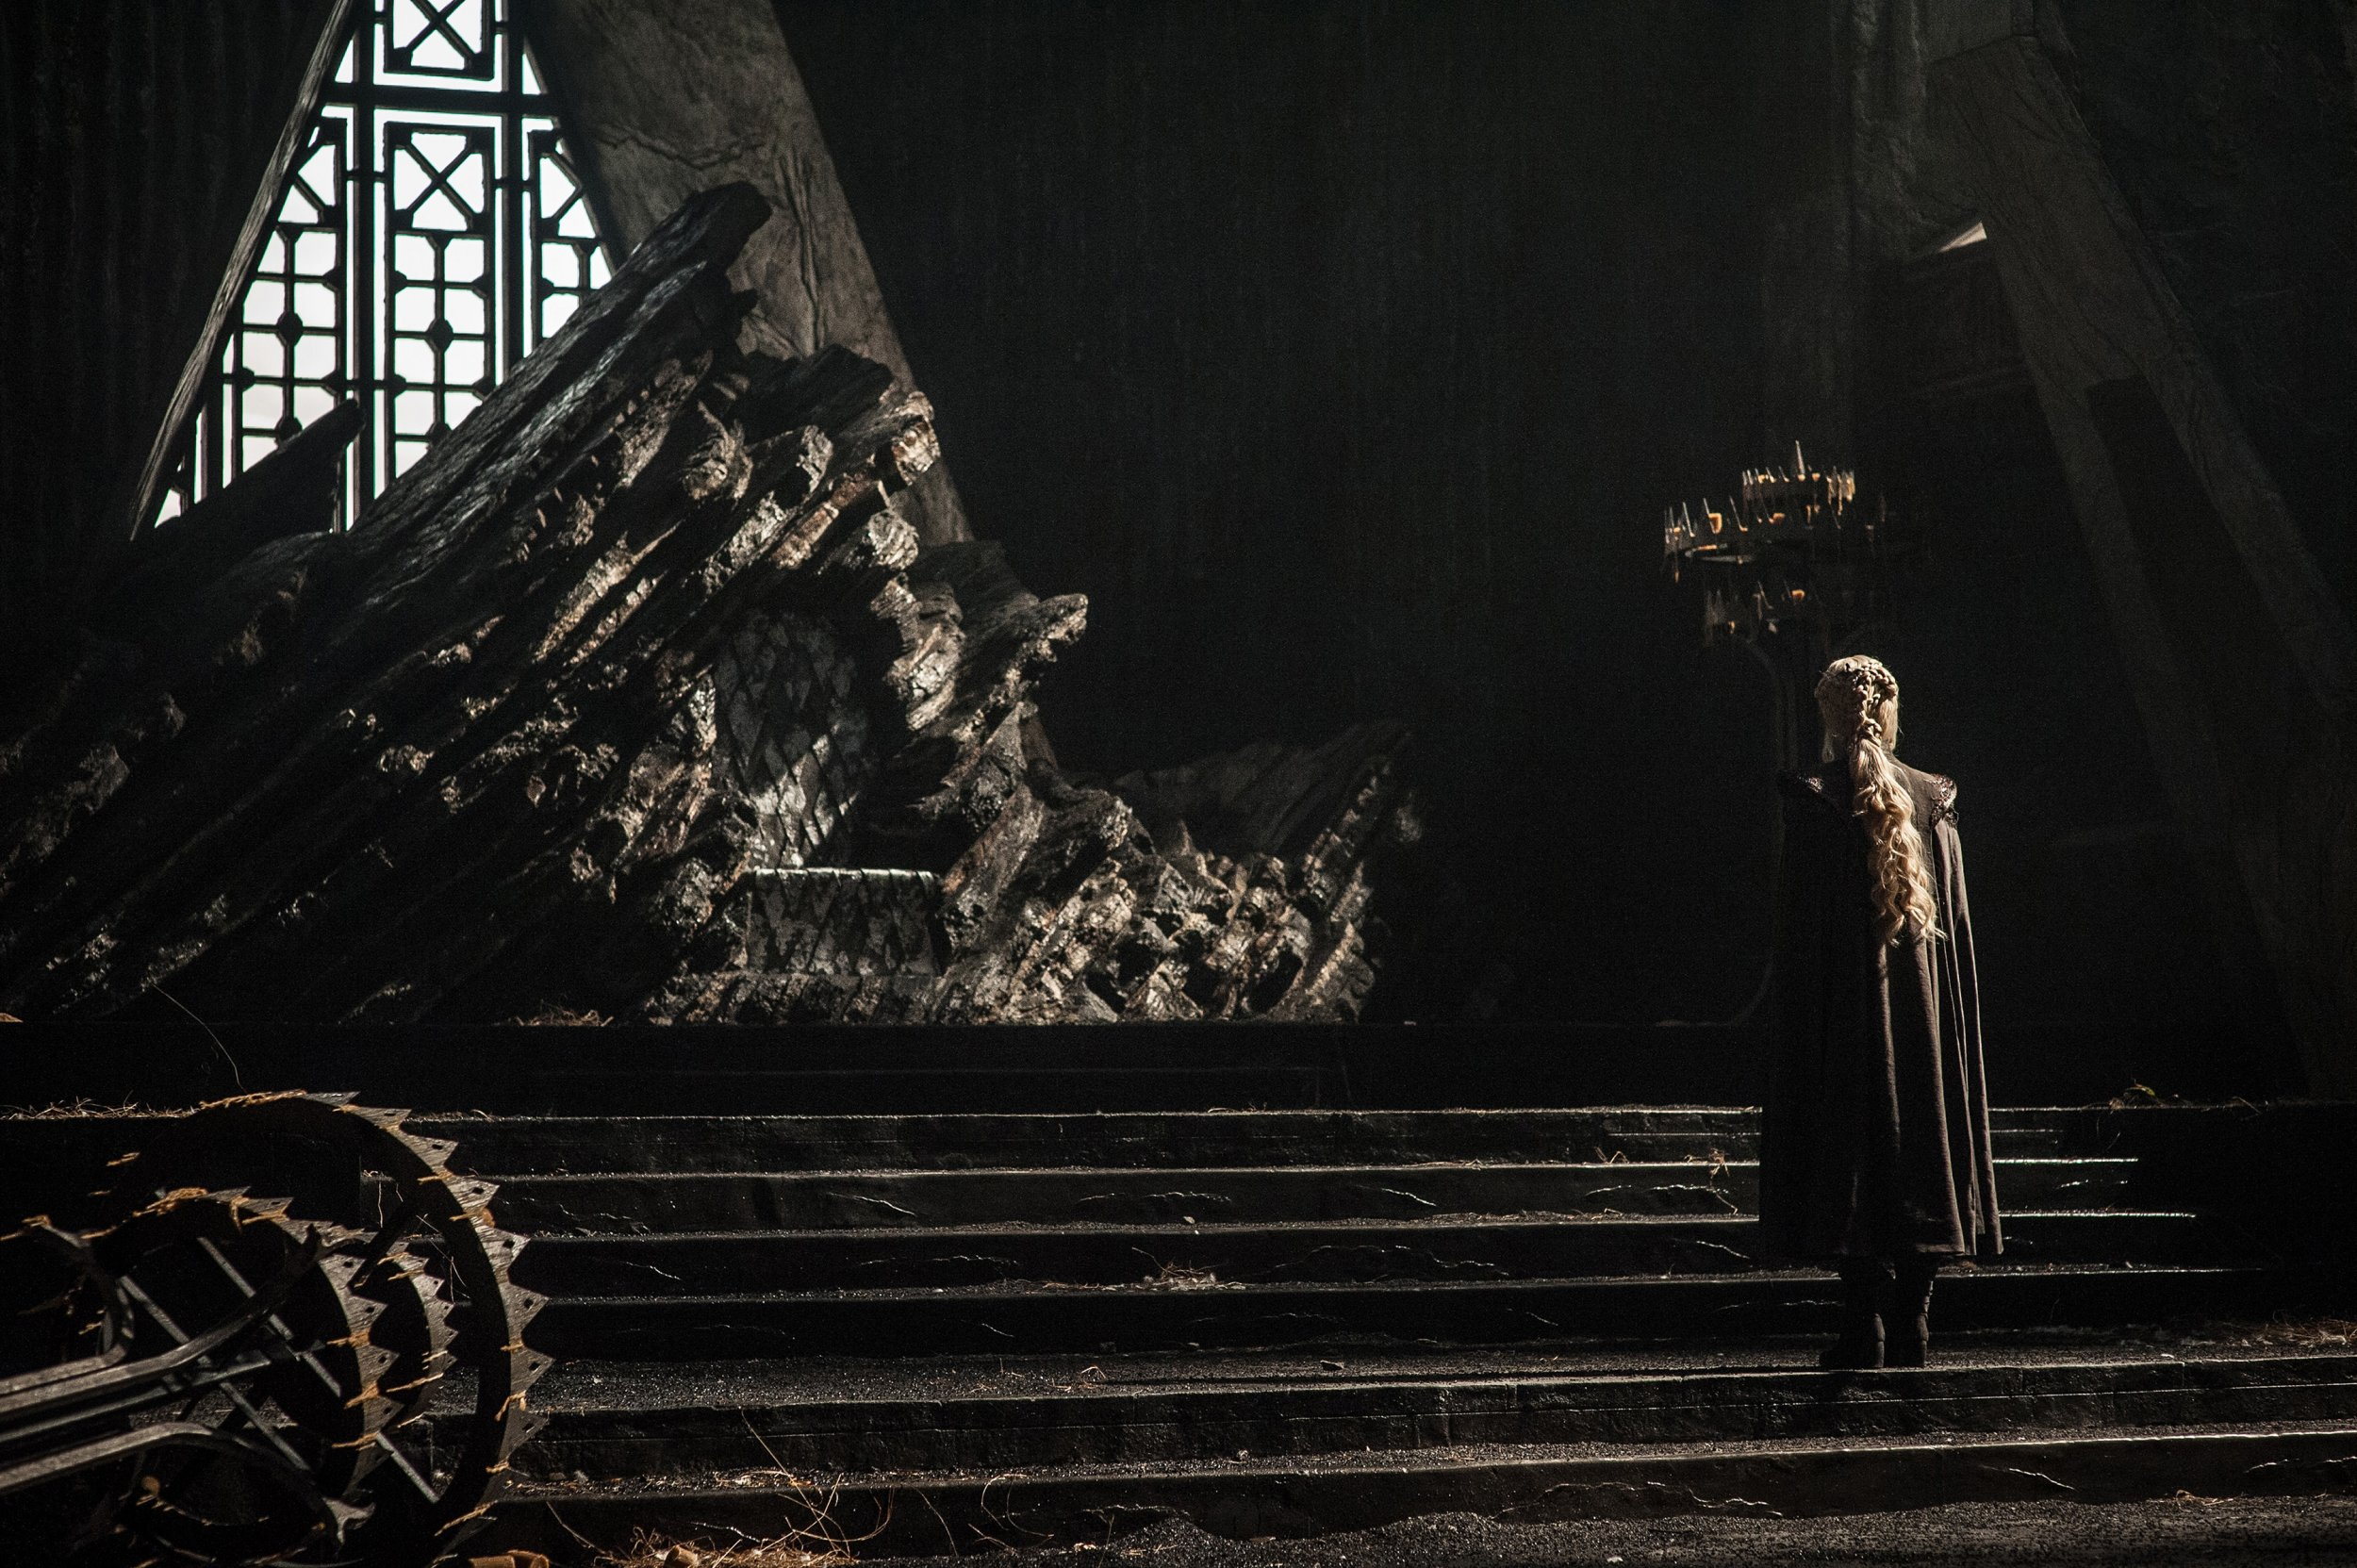 Game Of Thrones - Game Of Thrones Season 7 Episode 1 Dragonstone - HD Wallpaper